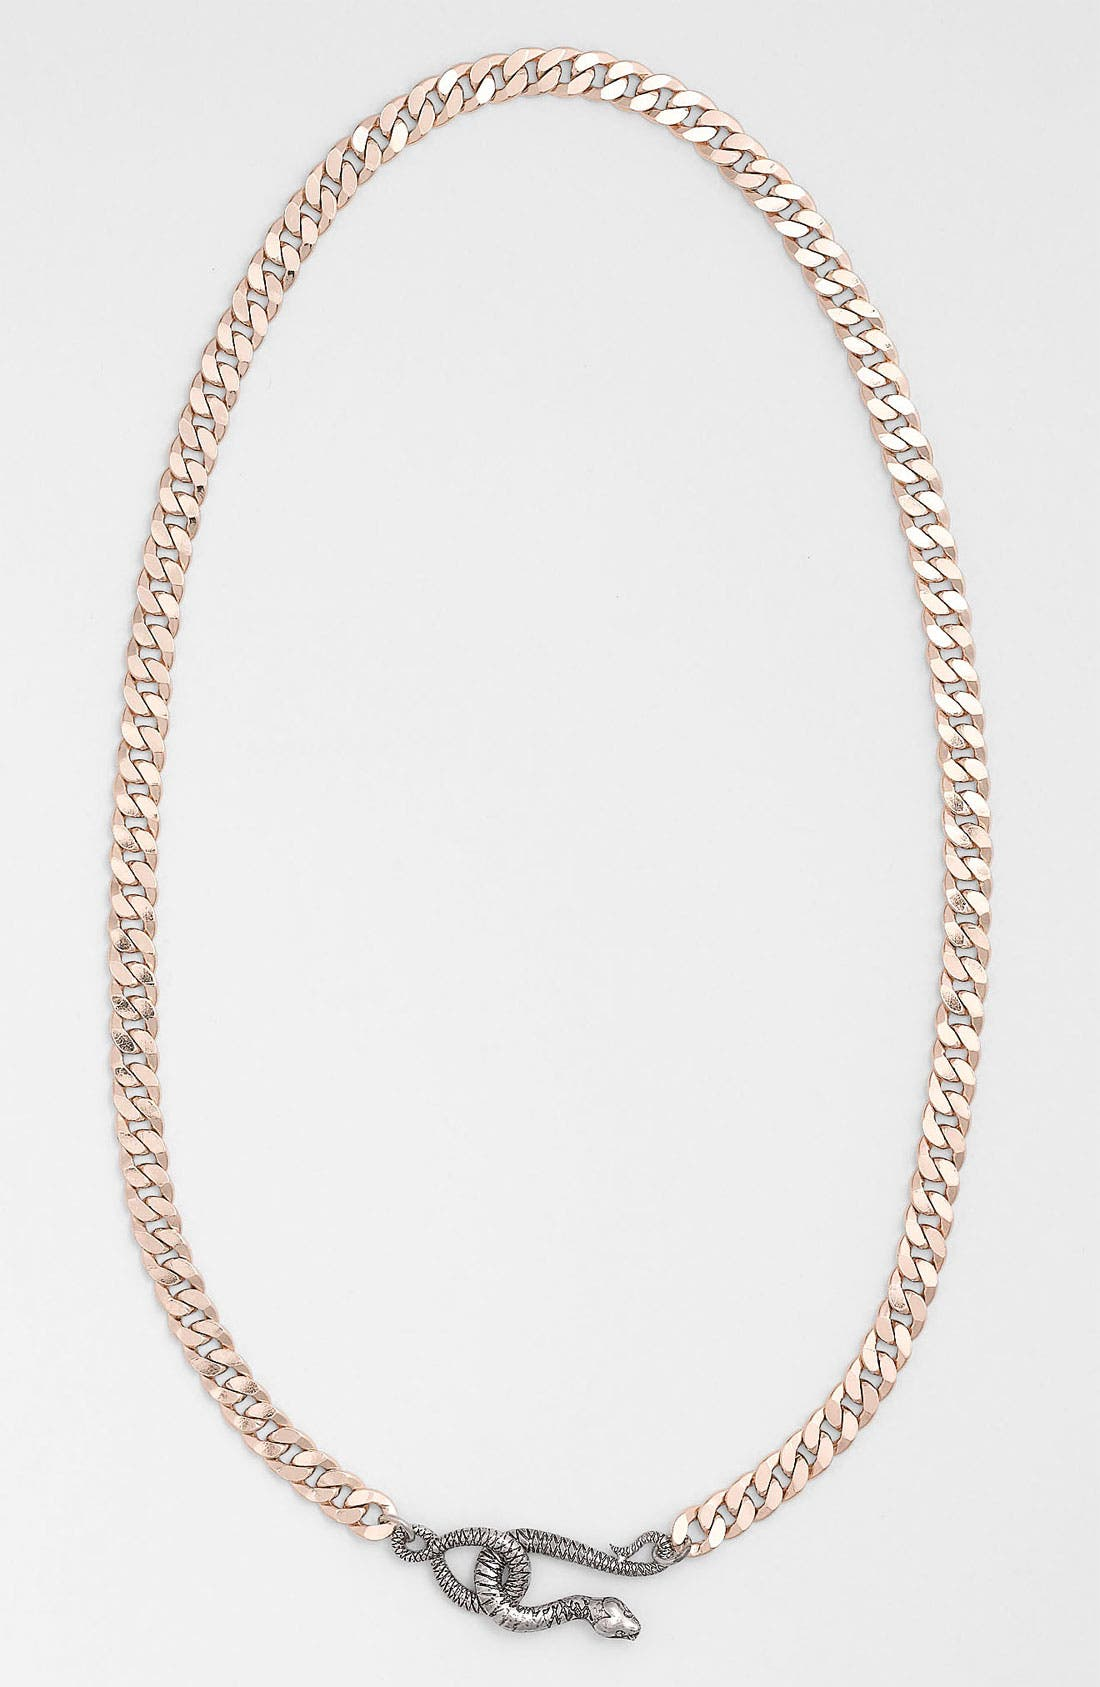 Main Image - Guinevere Snake Closure Chain Collar Necklace